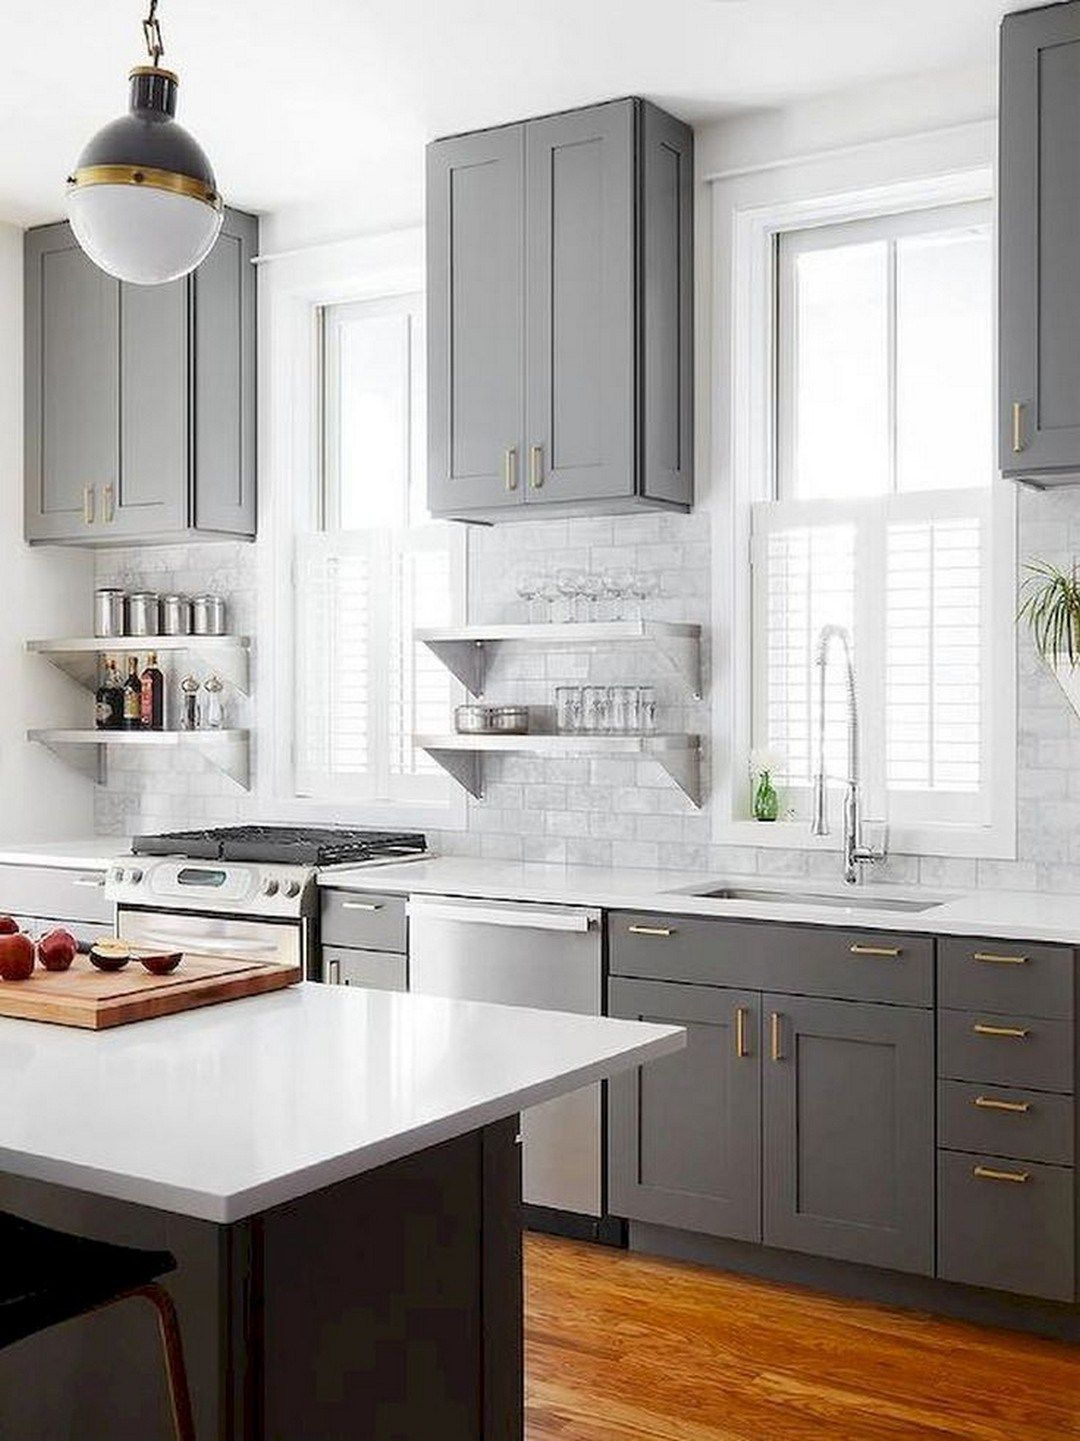 incredible farmhouse grey kitchen cabinet design ideas 39 kitchen cabinets decor kitchen on kitchen cabinets farmhouse style id=72161